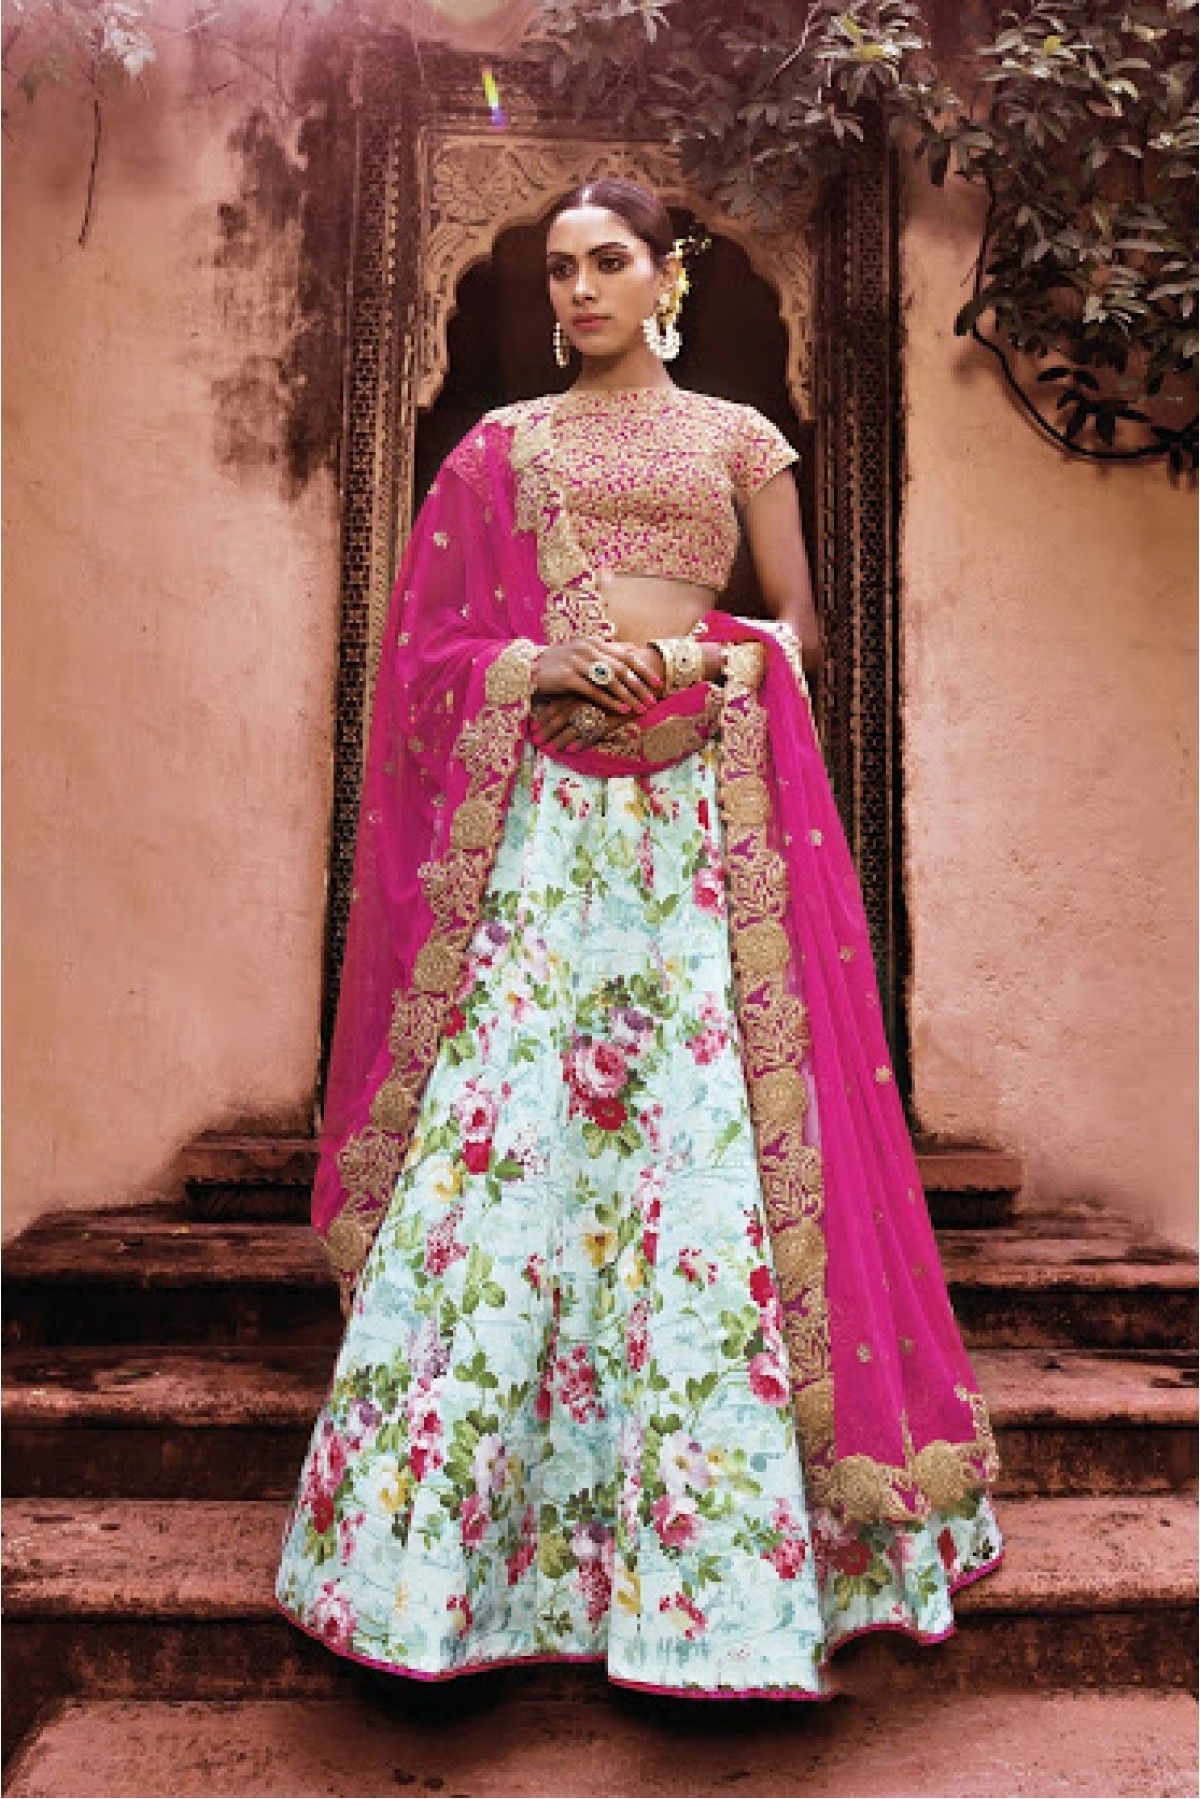 8fbd03aa4b7dc Sky Blue and Pink Colour Art Silk Fabric Designer A Line Lehenga Choli  Comes With Matching Blouse and Dupatta. This Lehenga Choli Is Crafted With  Embroidery ...